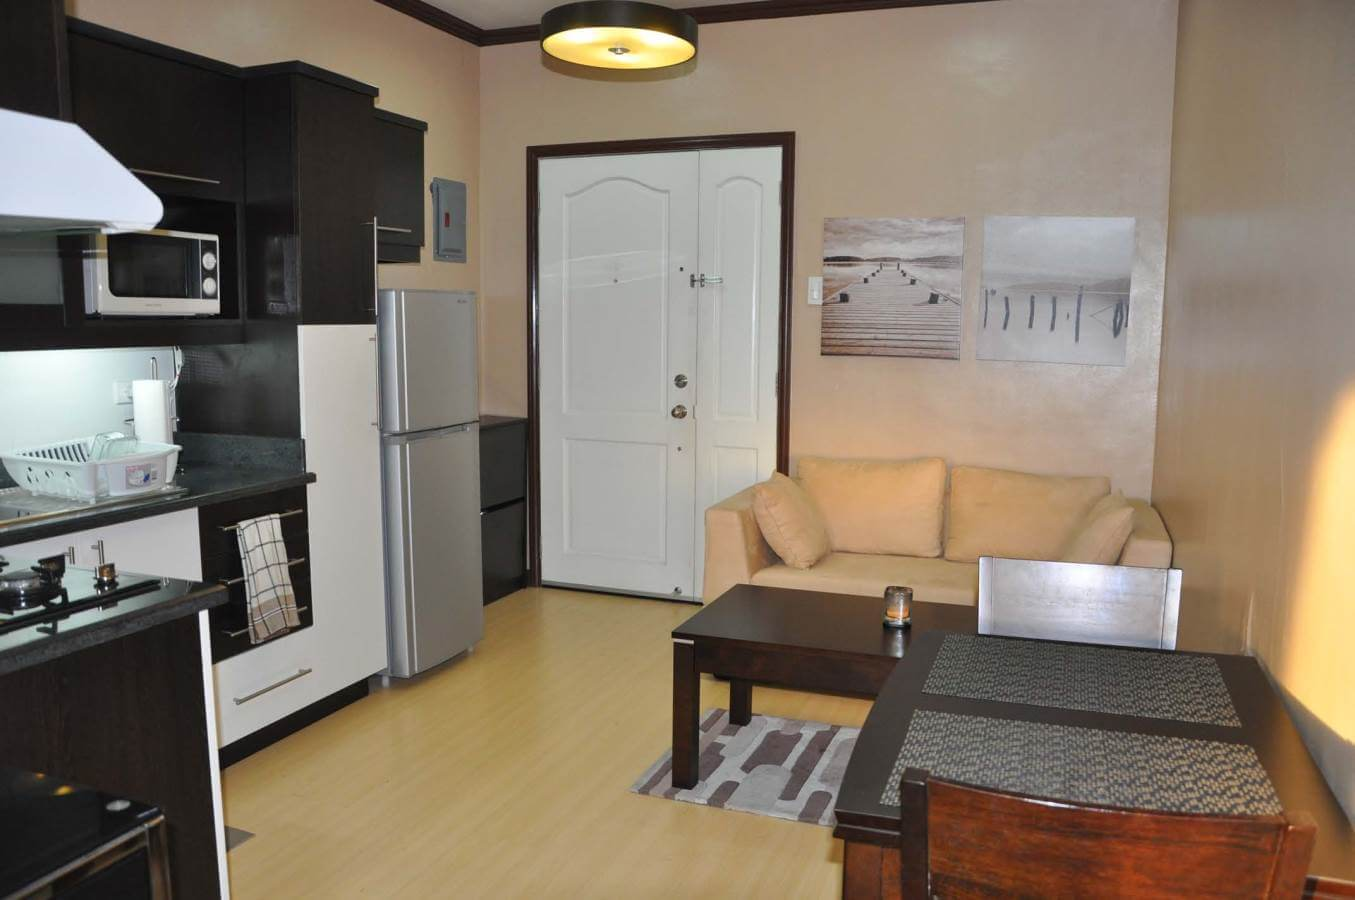 Palaciego uno fully furnished 1 bedroom condo unit for for One bedroom design